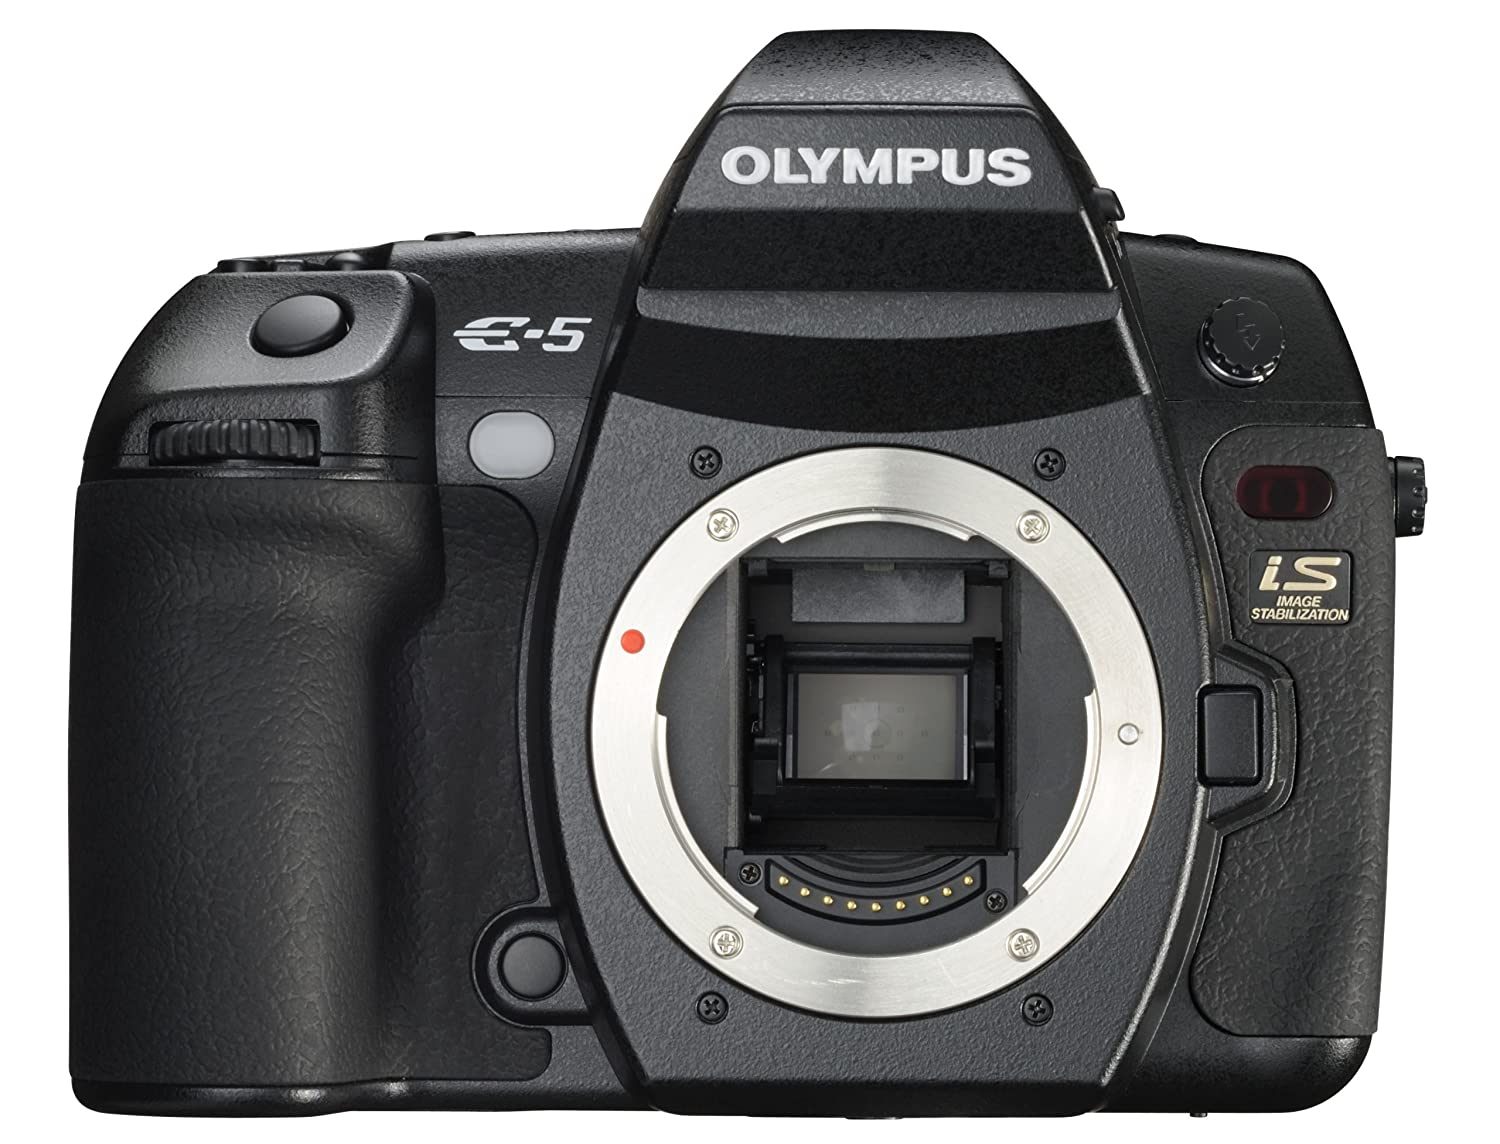 Olympus Digital Camera 5 Amazon.com : Olympus E-5 12.3MP Digital SLR with 3-inch LCD [Body Only]  (Black) : Slr Digital Cameras : Camera u0026 Photo